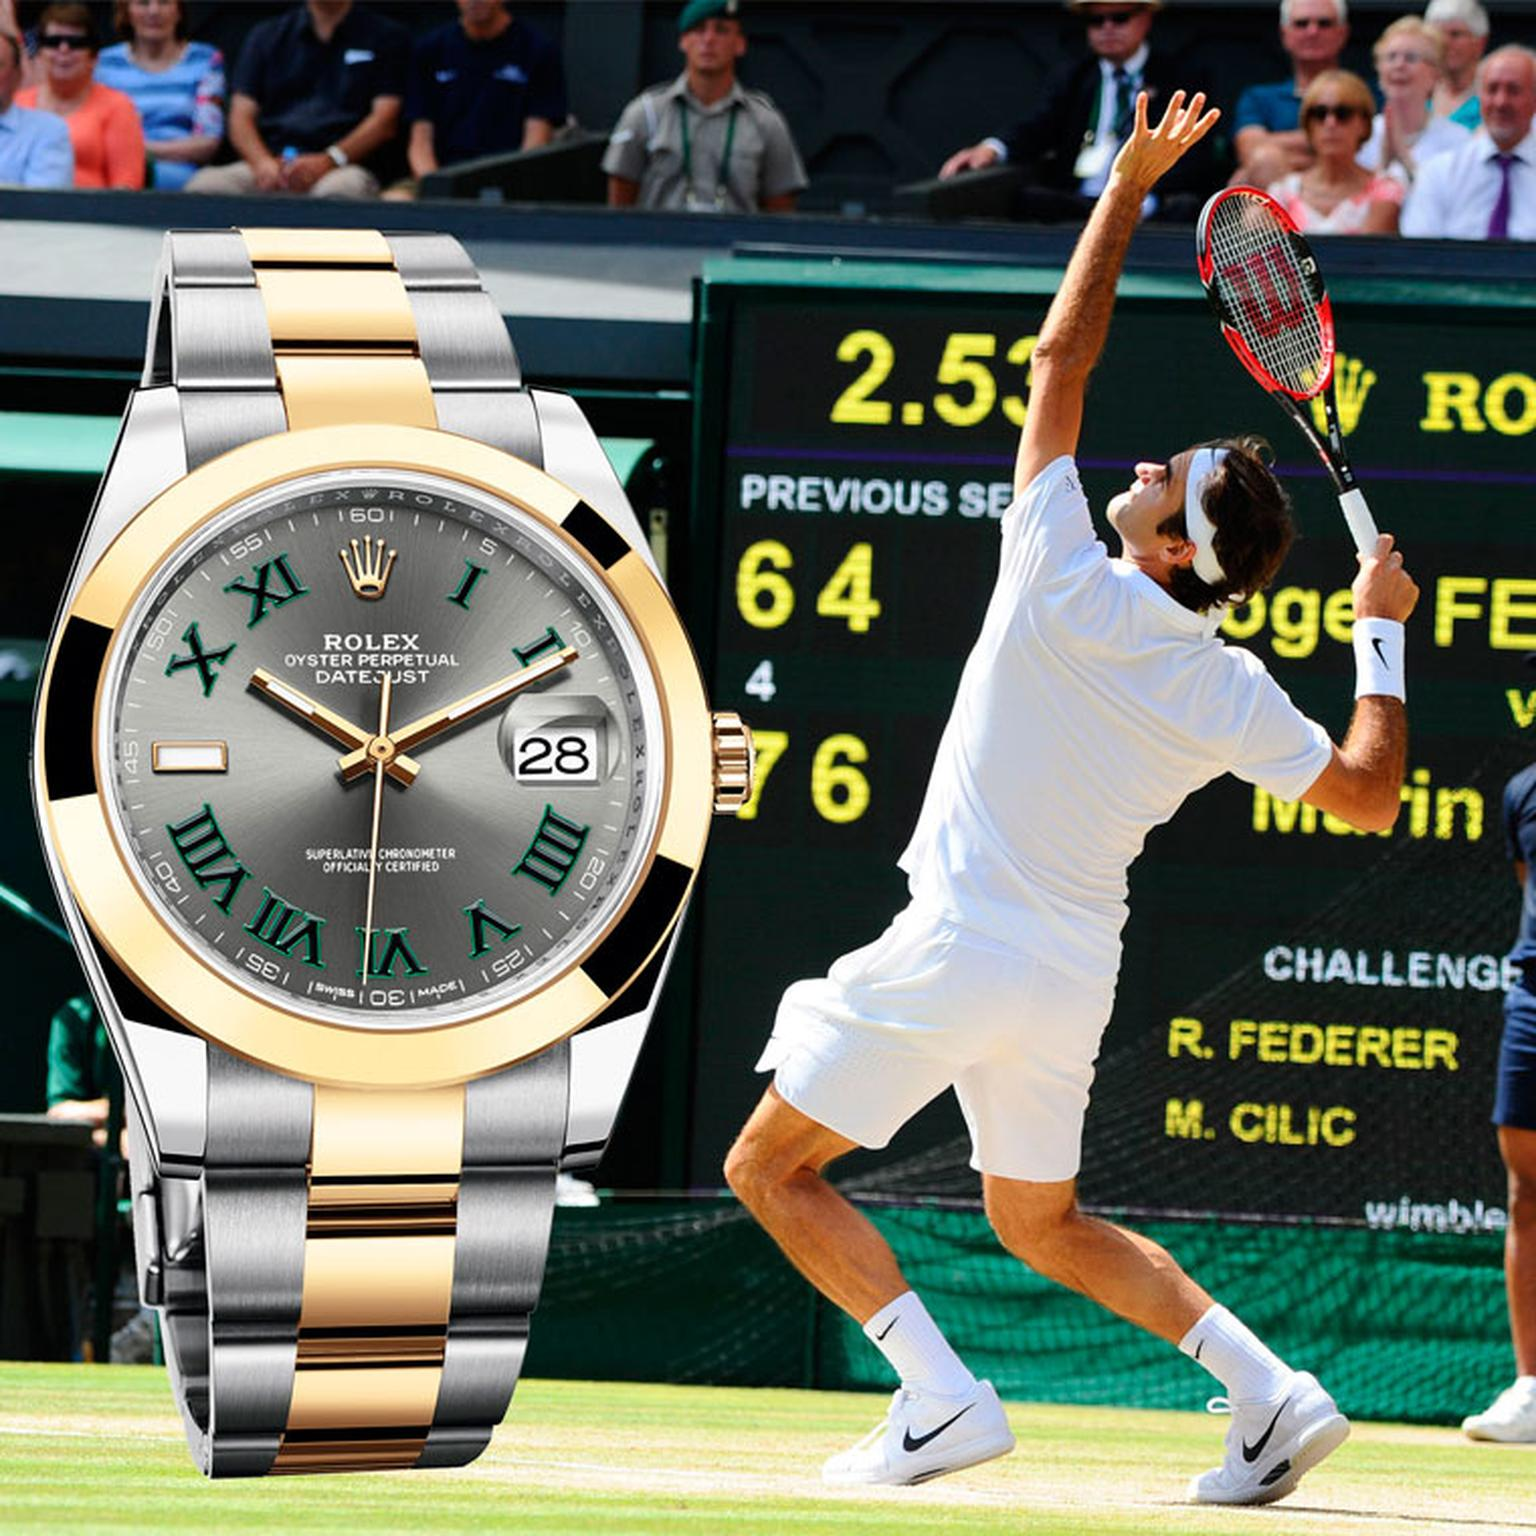 Keep your eyes peeled for these Wimbledon watches